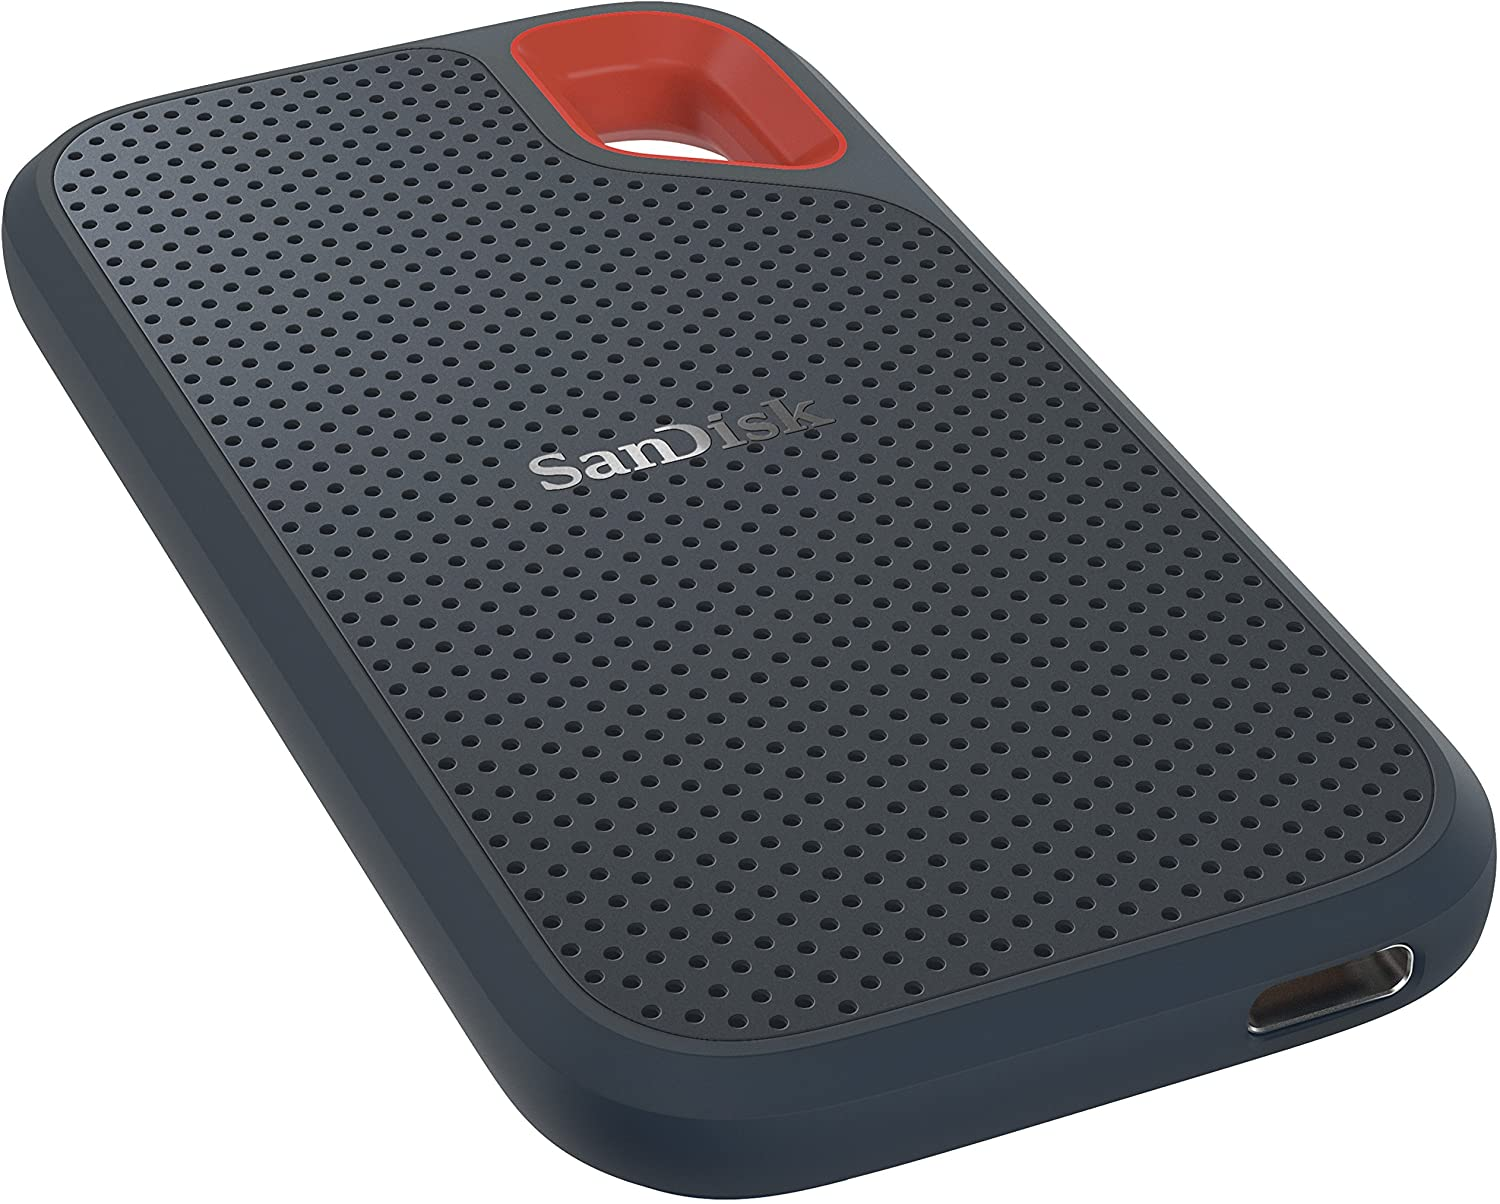 SANDISK EXTREME PORTABLE SSD 500GB USB 3.0